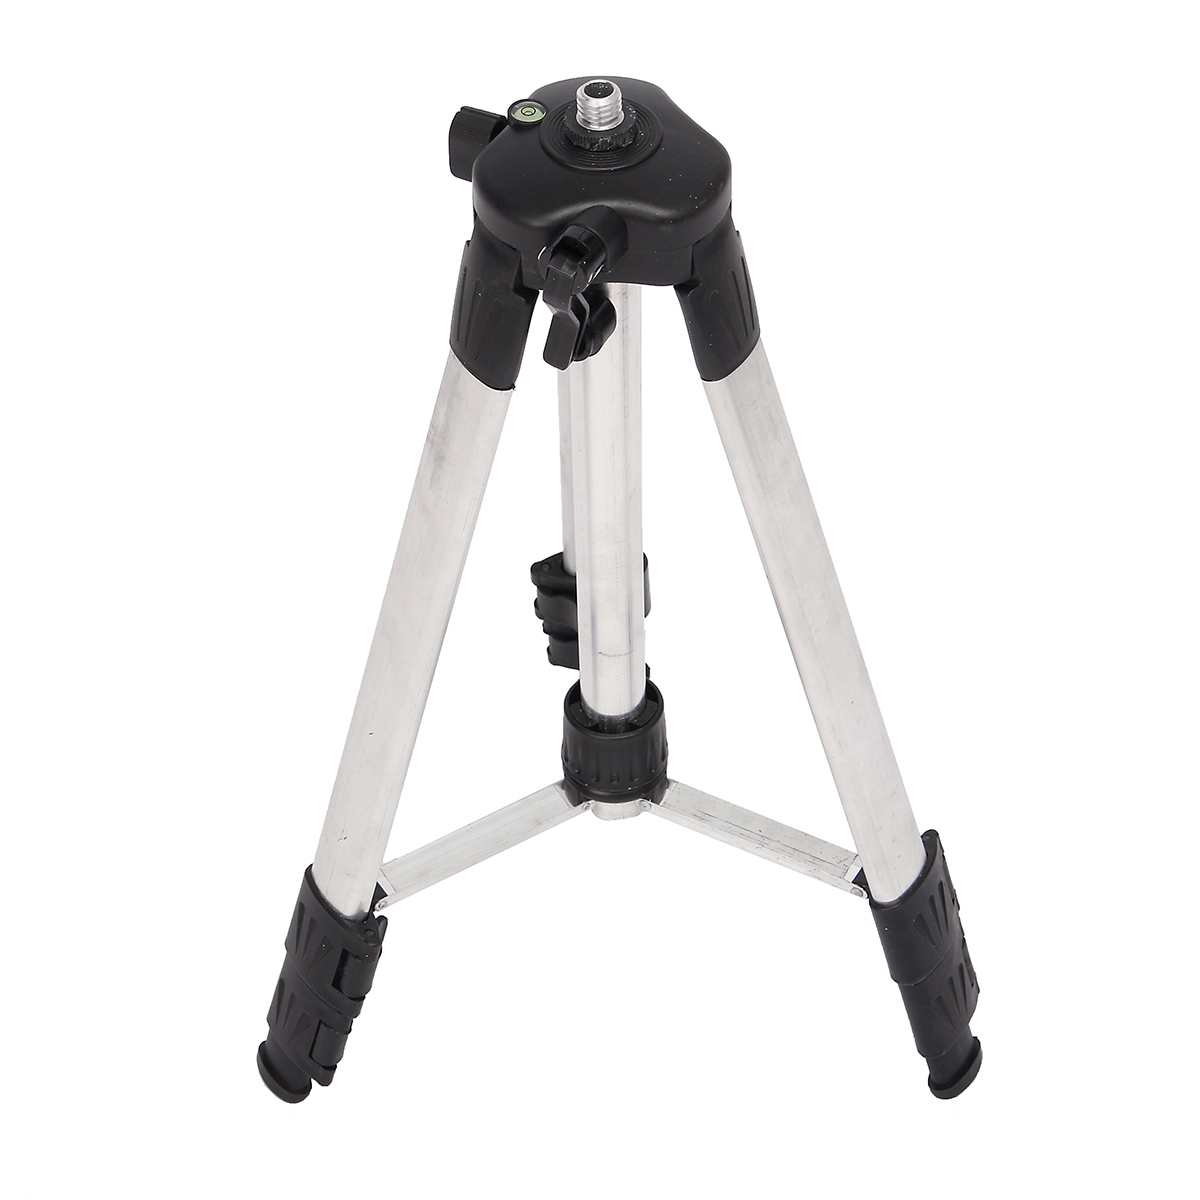 1.2M 3-Way Tripod Level Stand for Automatic Self Leveling Laser Level Measurement Tool Level Tripod Holder Measurement Tool